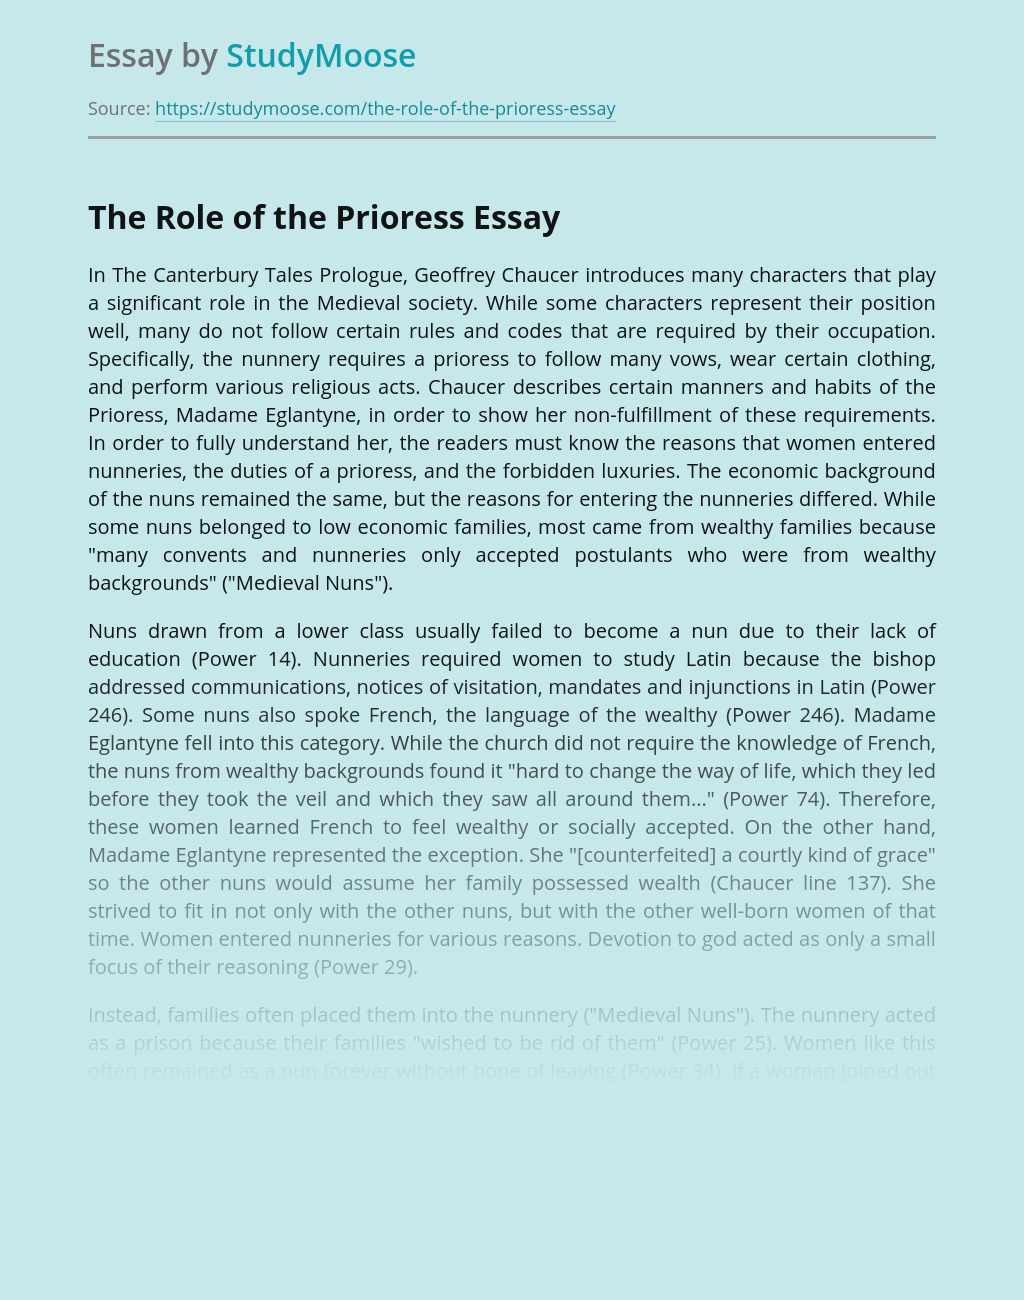 The Role of the Prioress